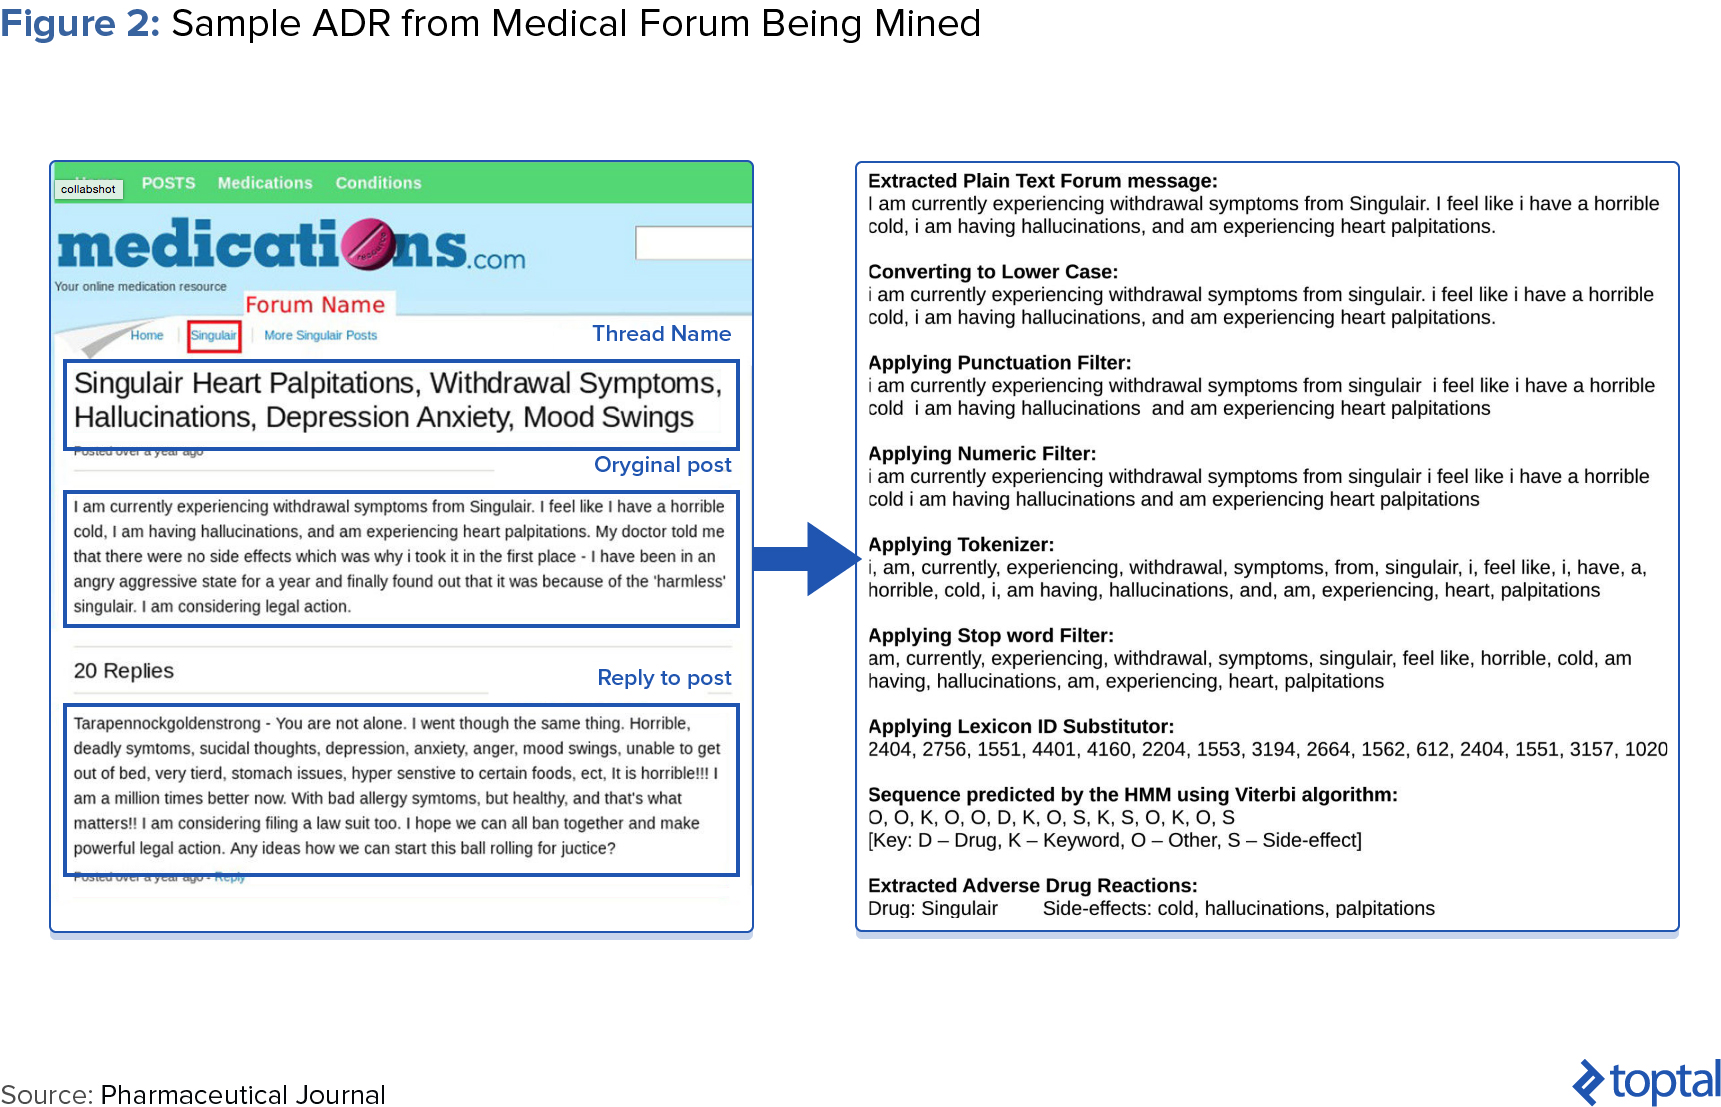 Figure 2: Sample ADR from Medical Forum Being Mined